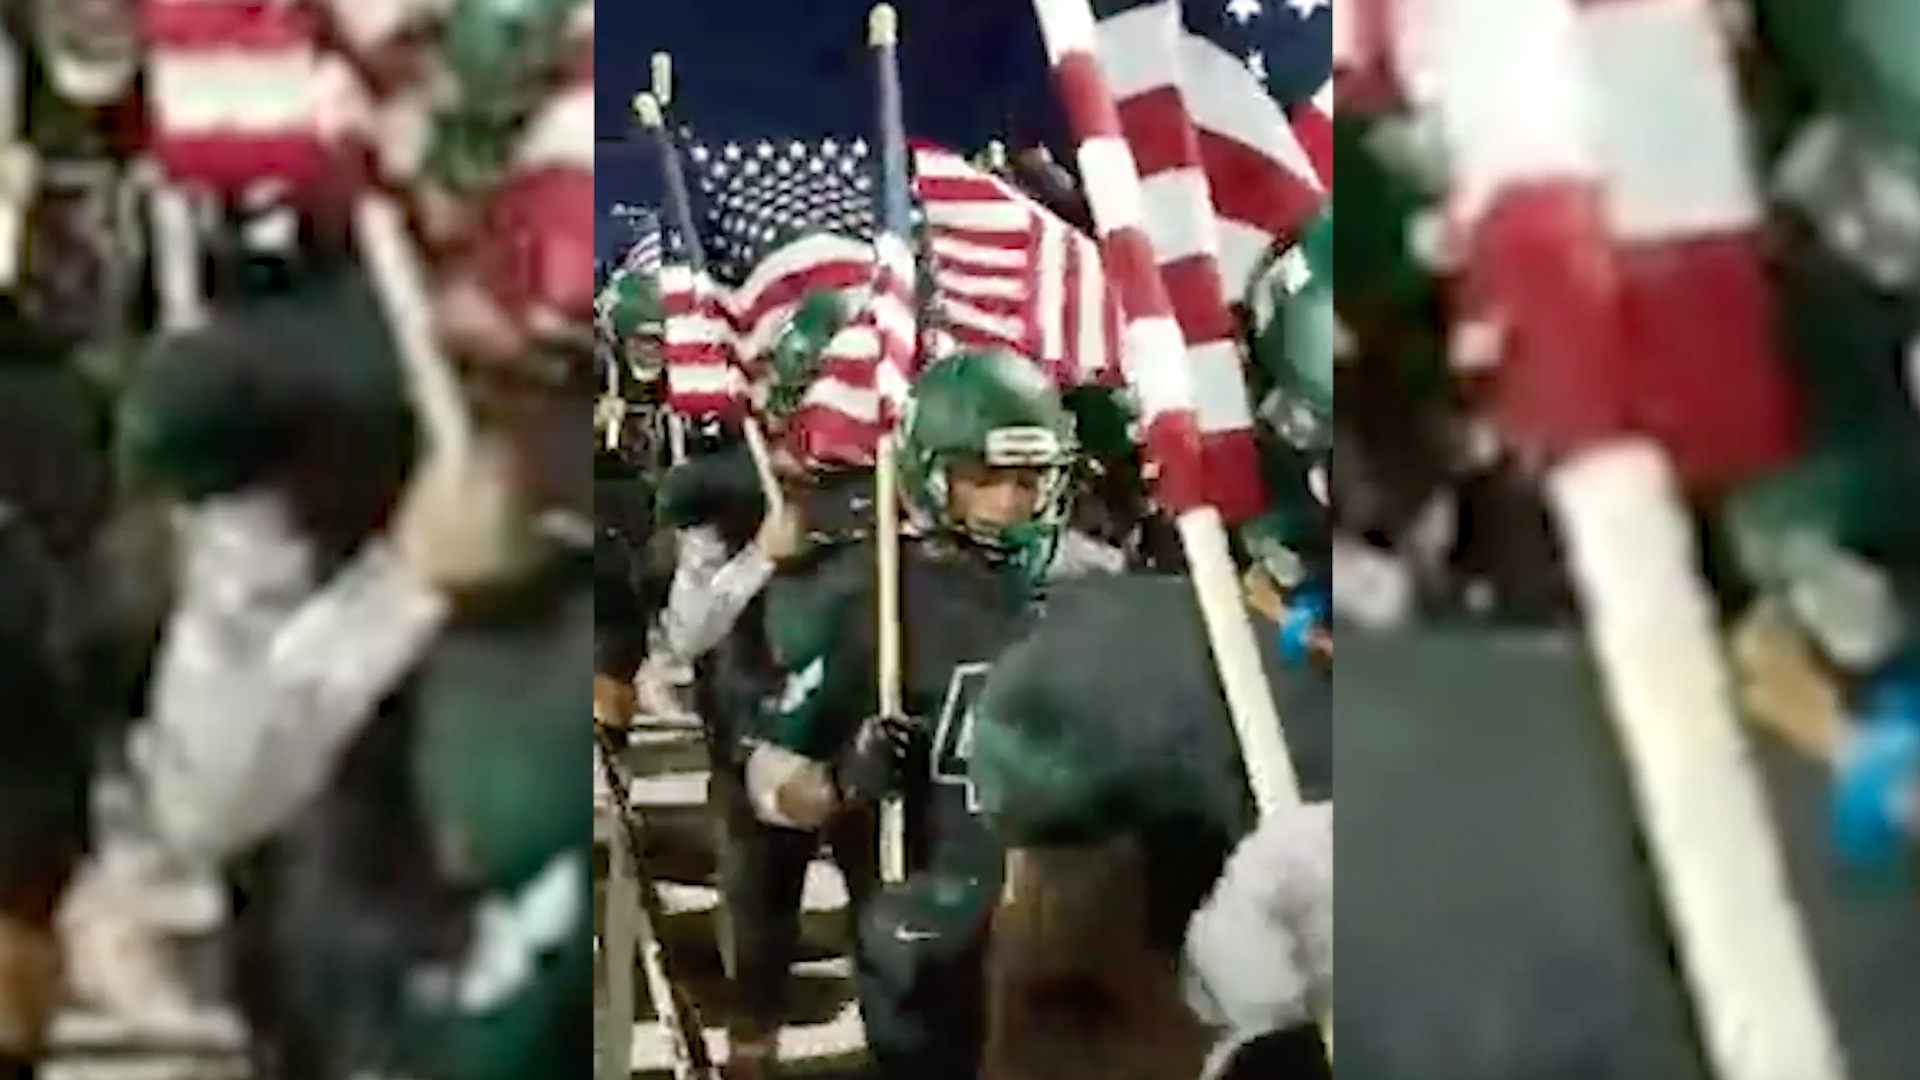 Watch This High School Football Team Take The Field With American Flags